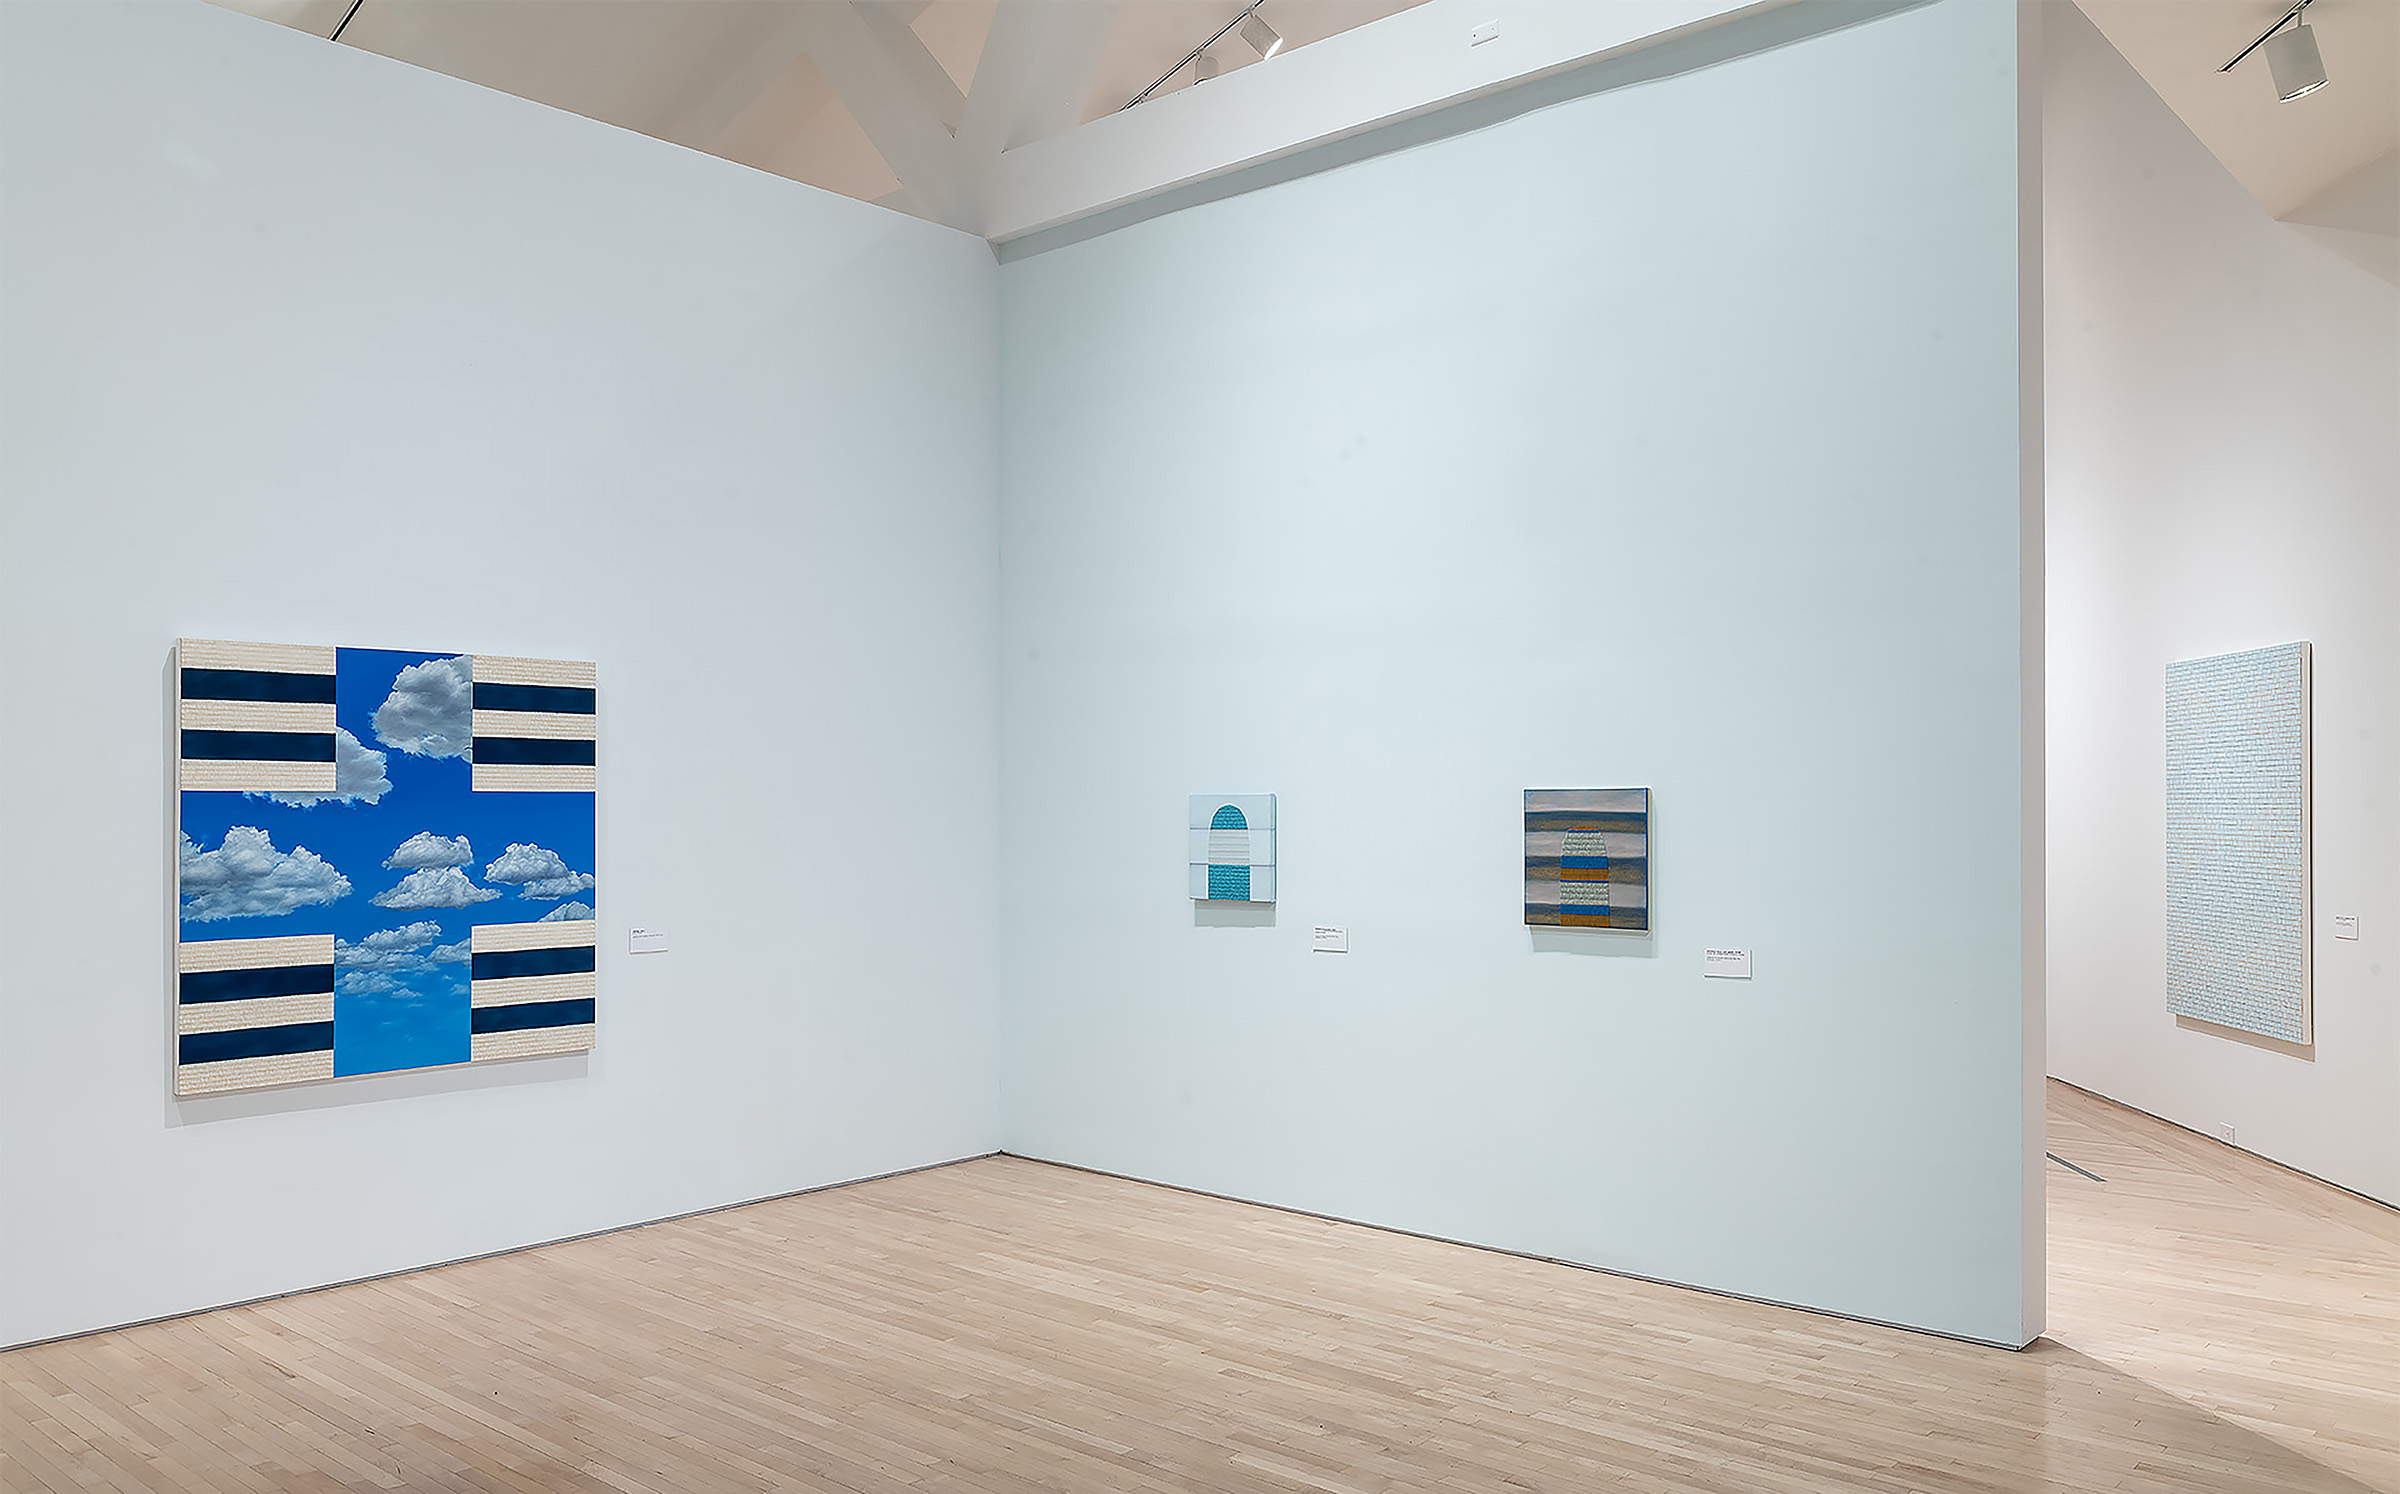 Abstract paintings in white-walled gallery.